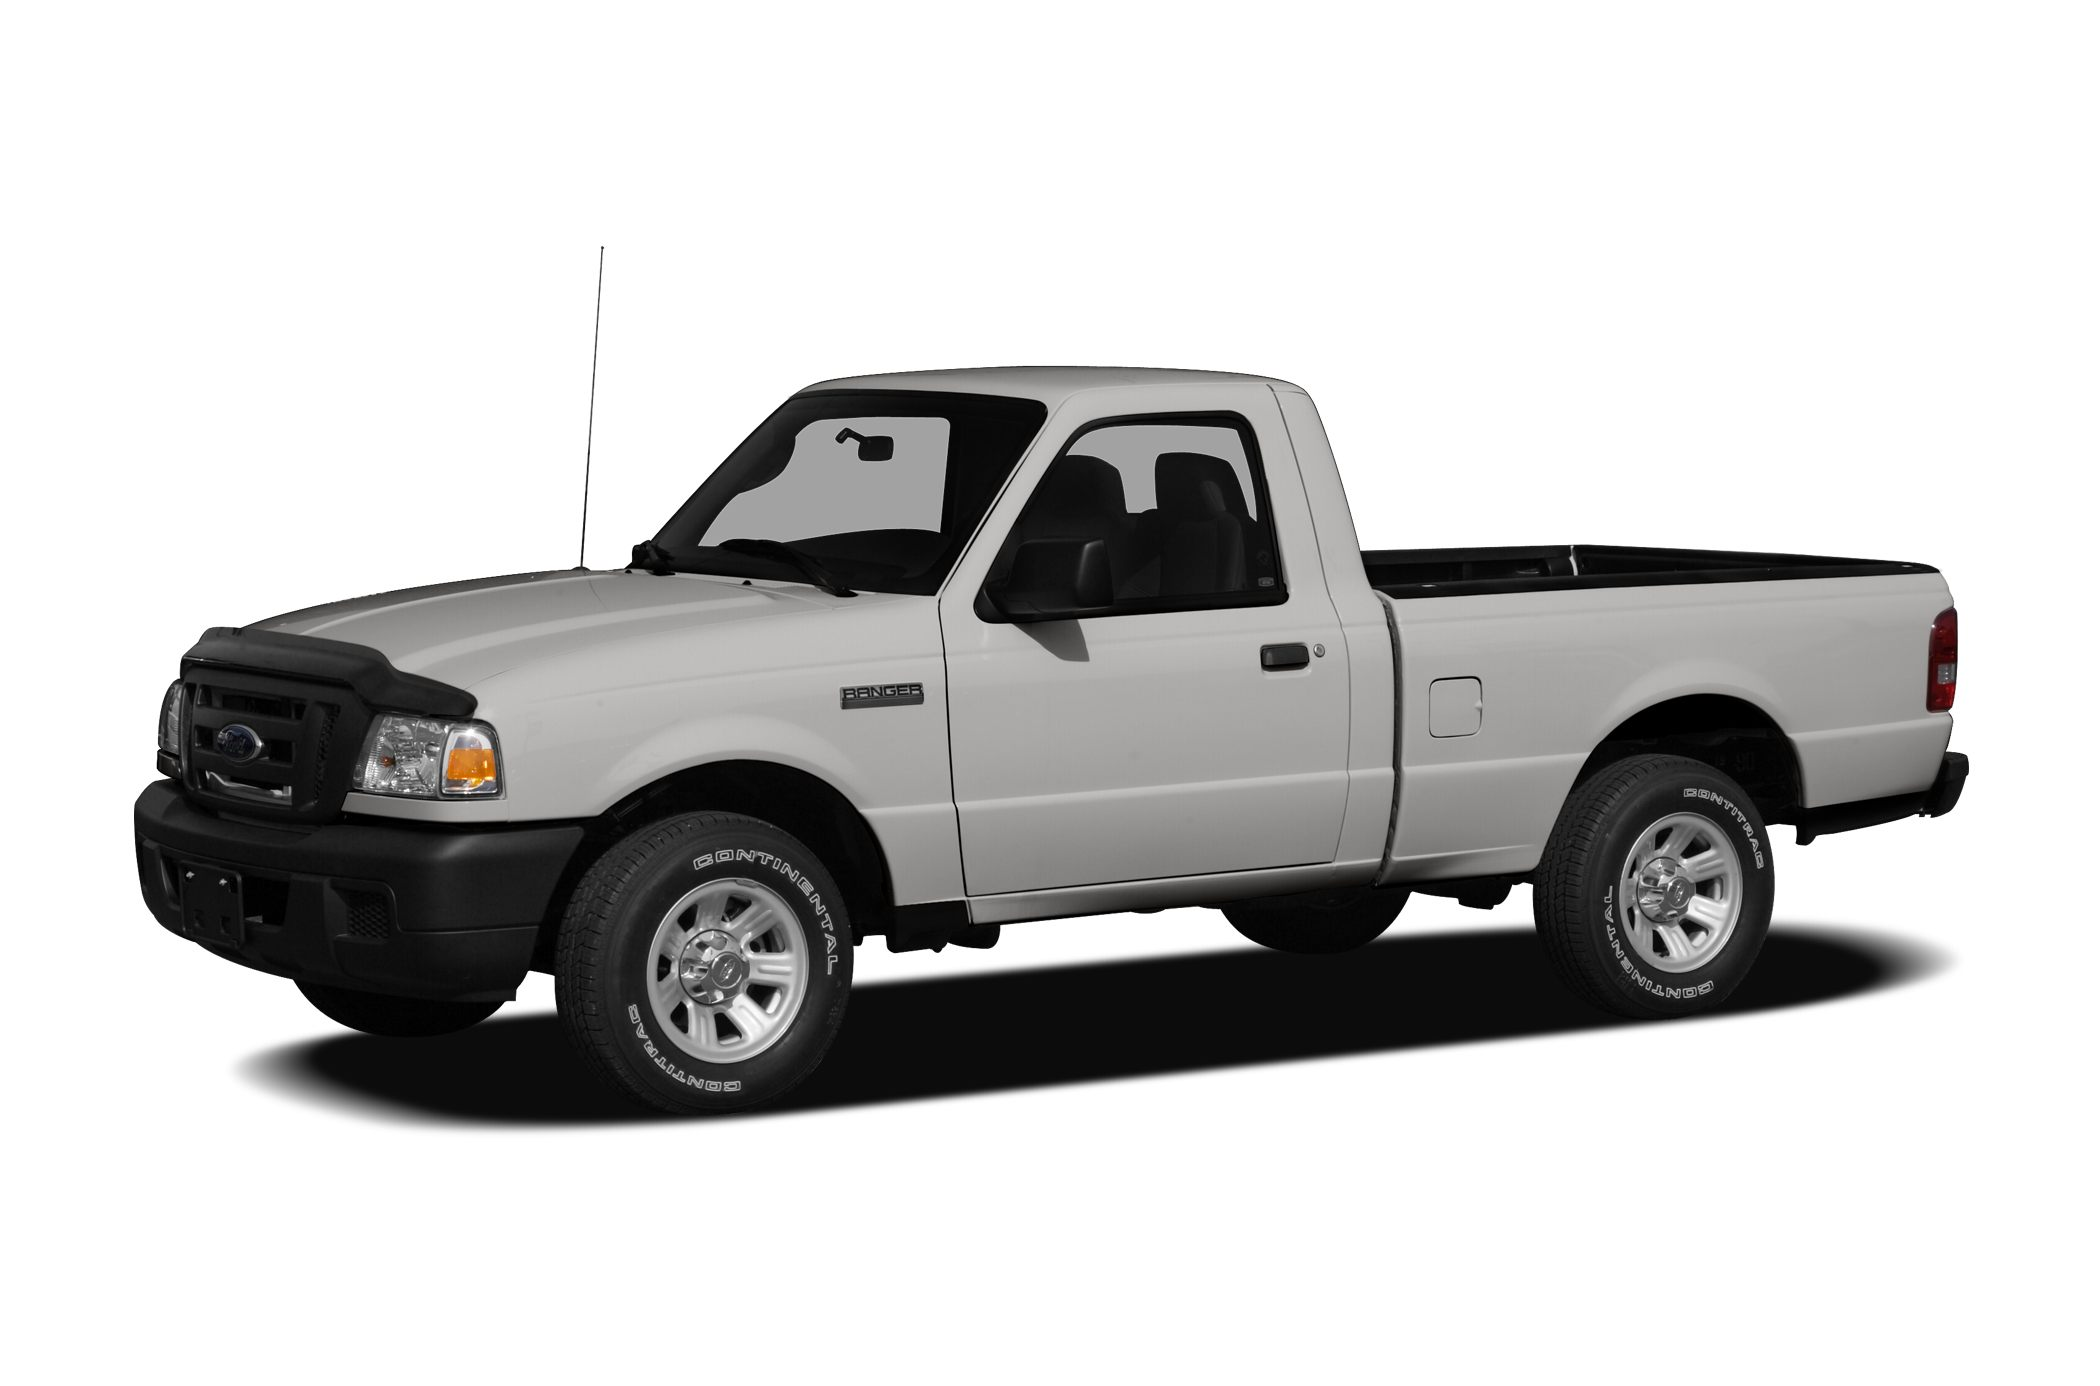 2008 Ford Ranger Sport Extended Cab Pickup for sale in Blue Springs for $13,750 with 97,705 miles